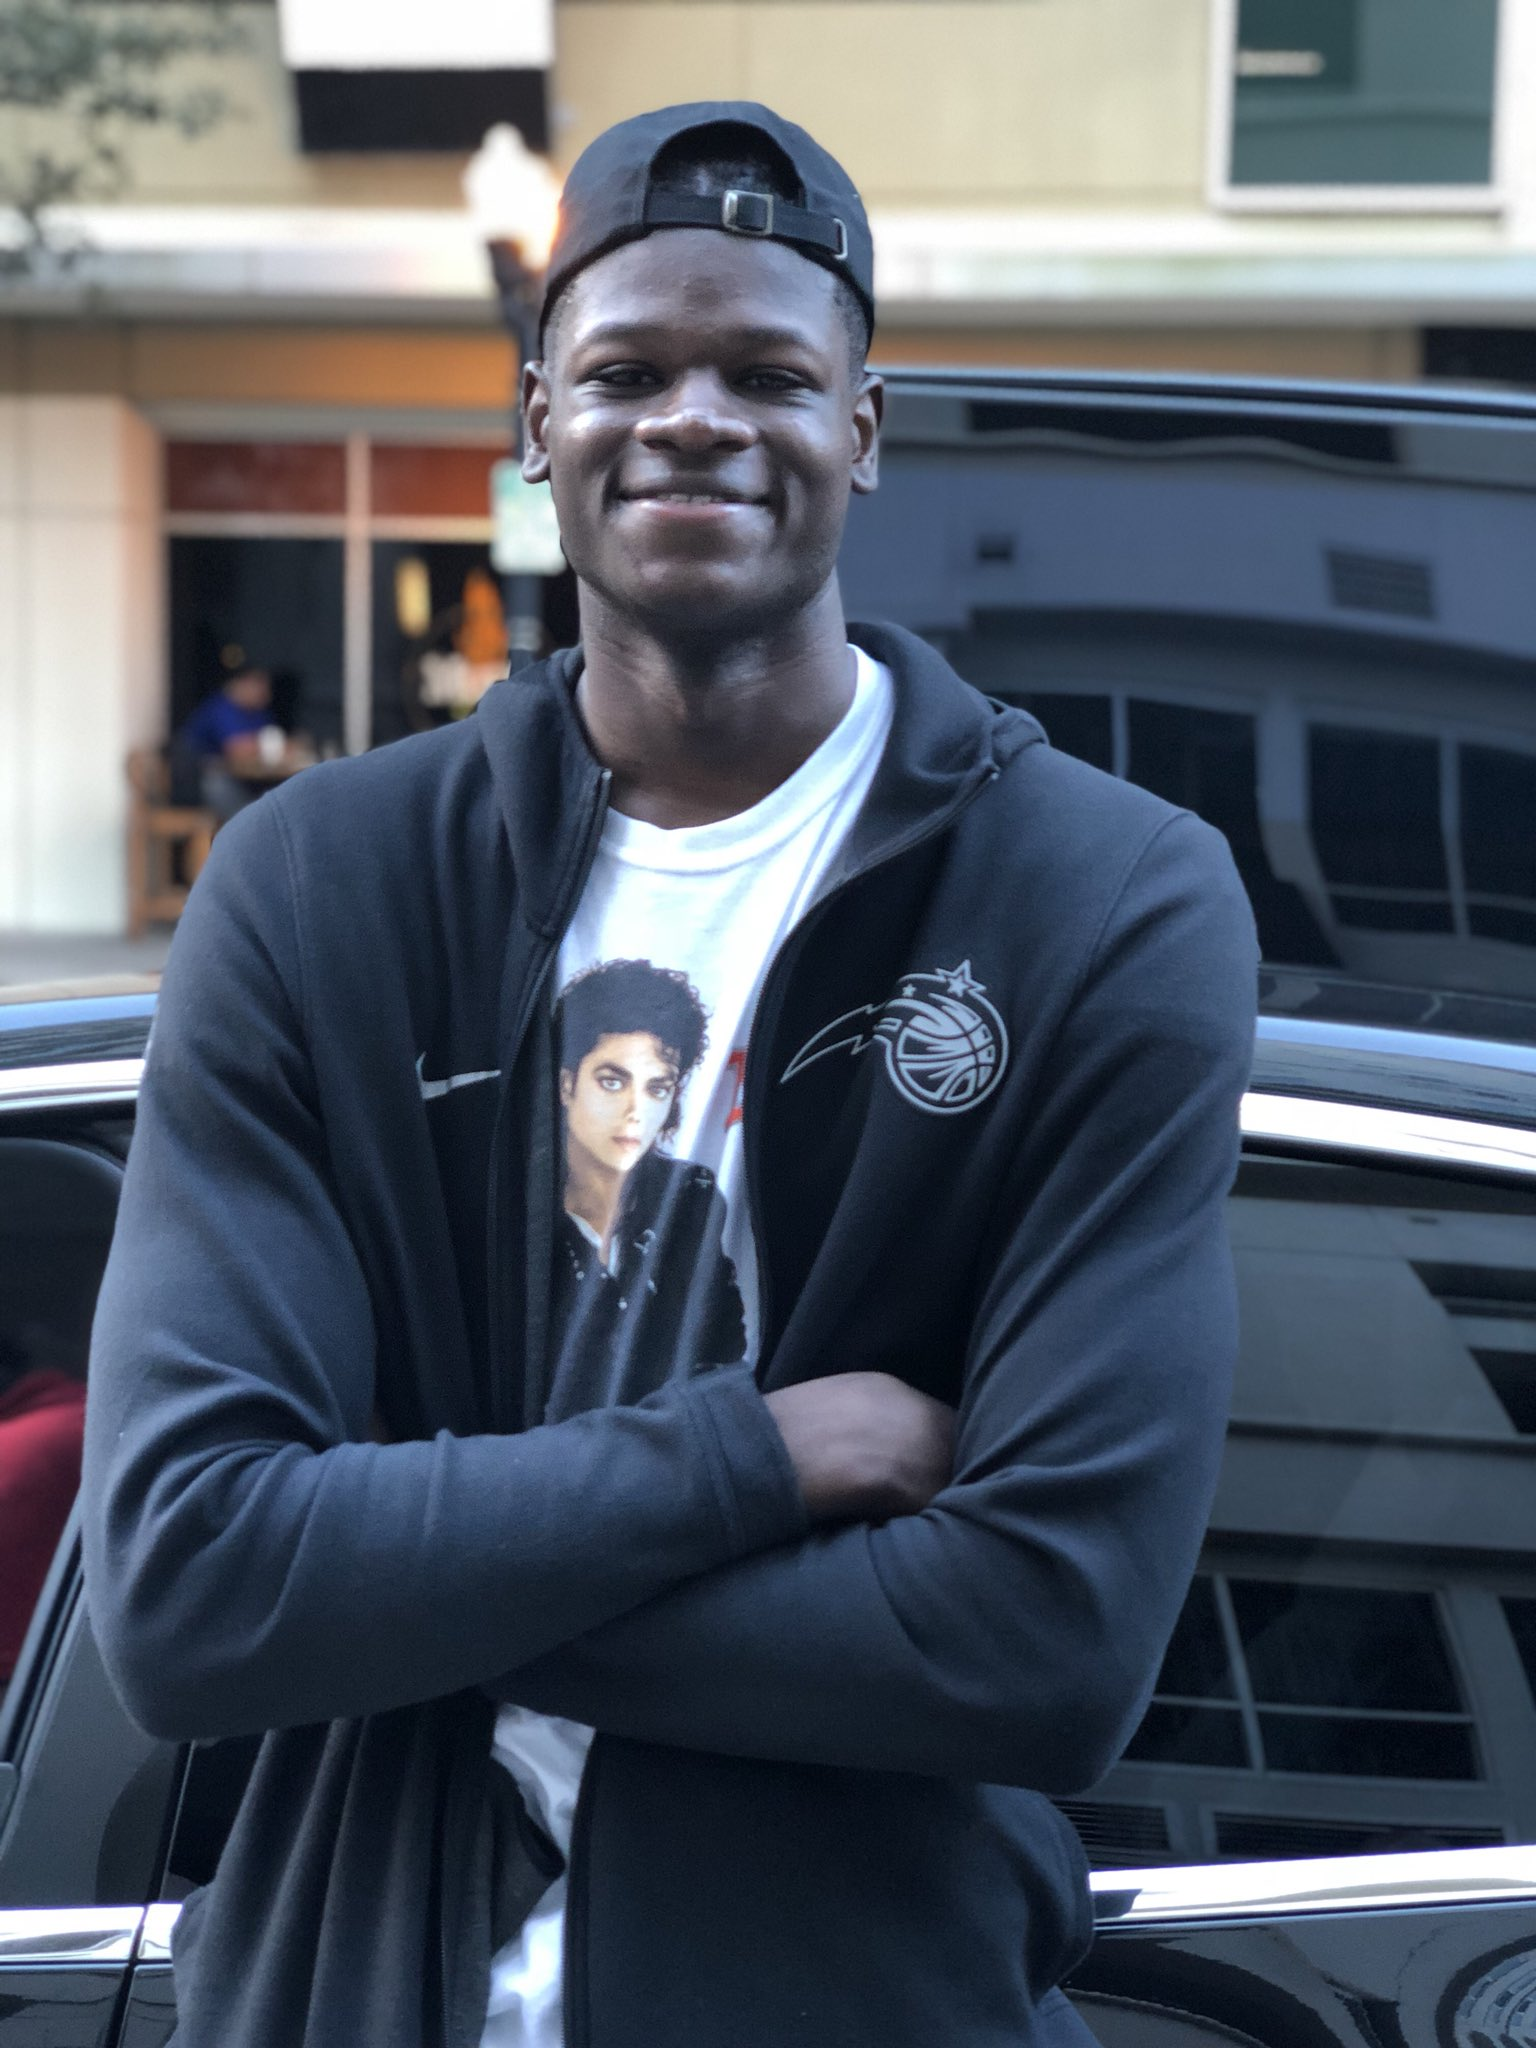 6th overall @NBADraft pick.  @TheRealMoBamba #ADayWithMo https://t.co/cpsGz0GU5B